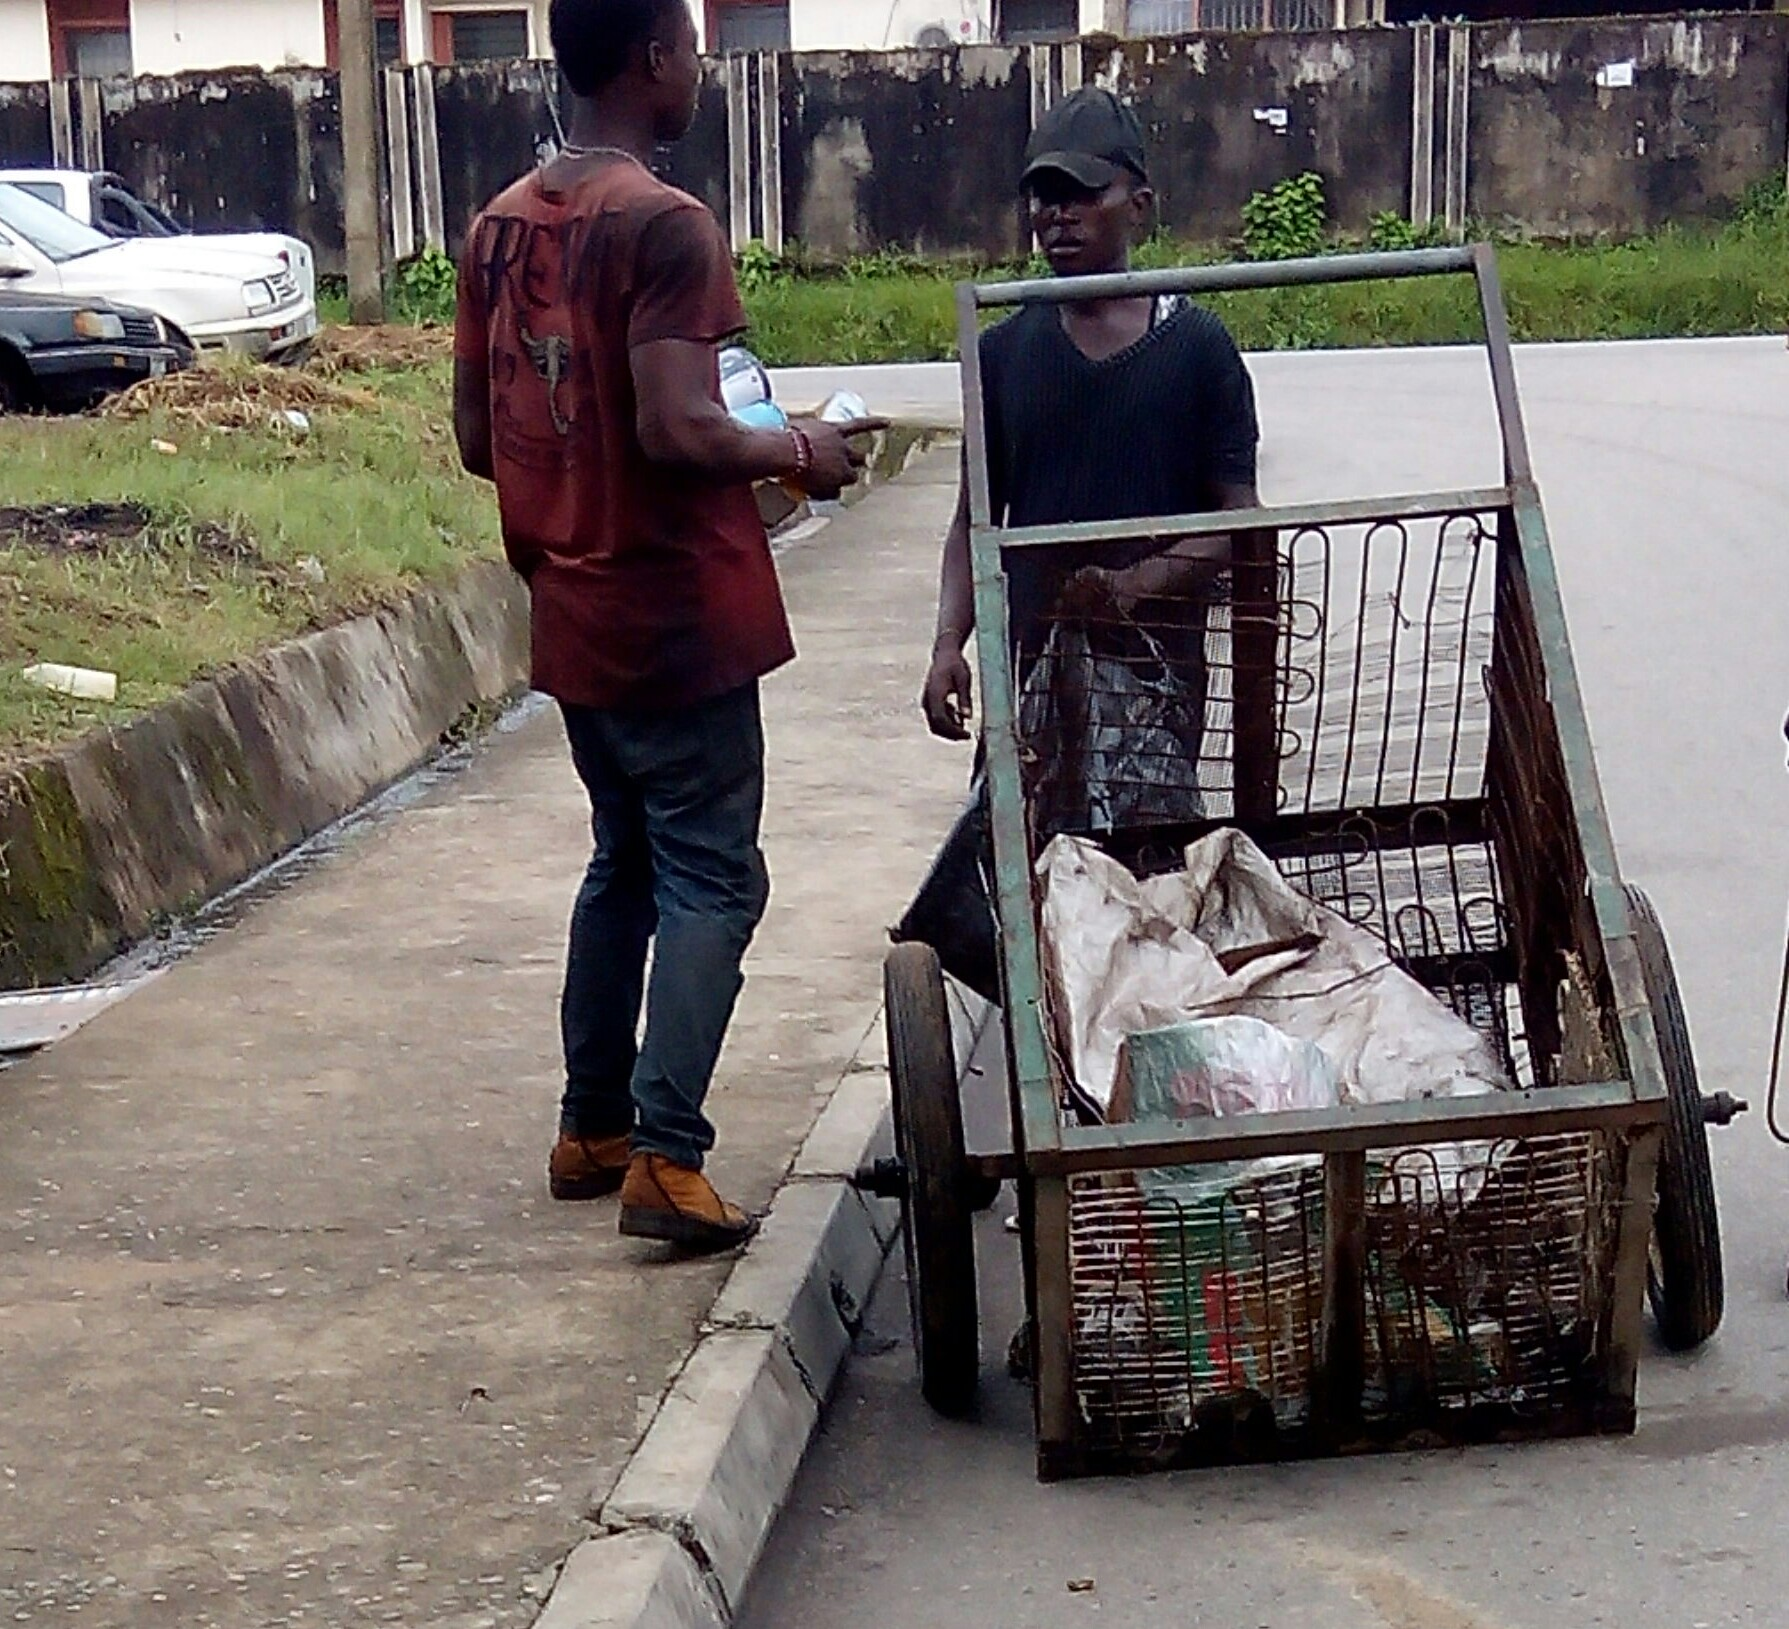 Daniel with his cart, being offered empty cans.